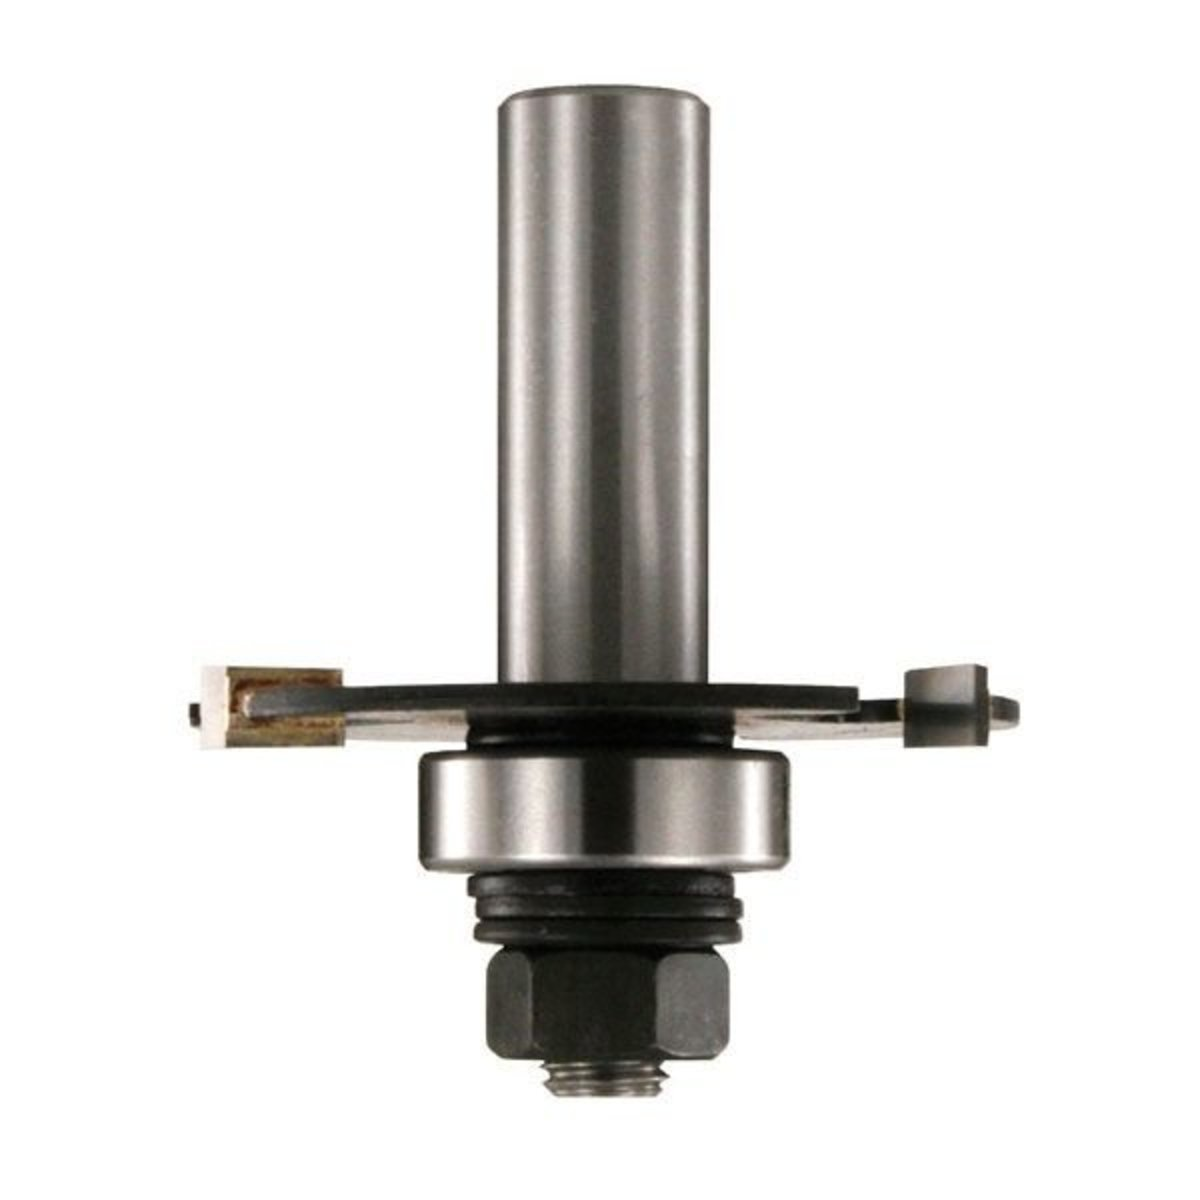 Wing slotting cutter router bit national hardware mail slot